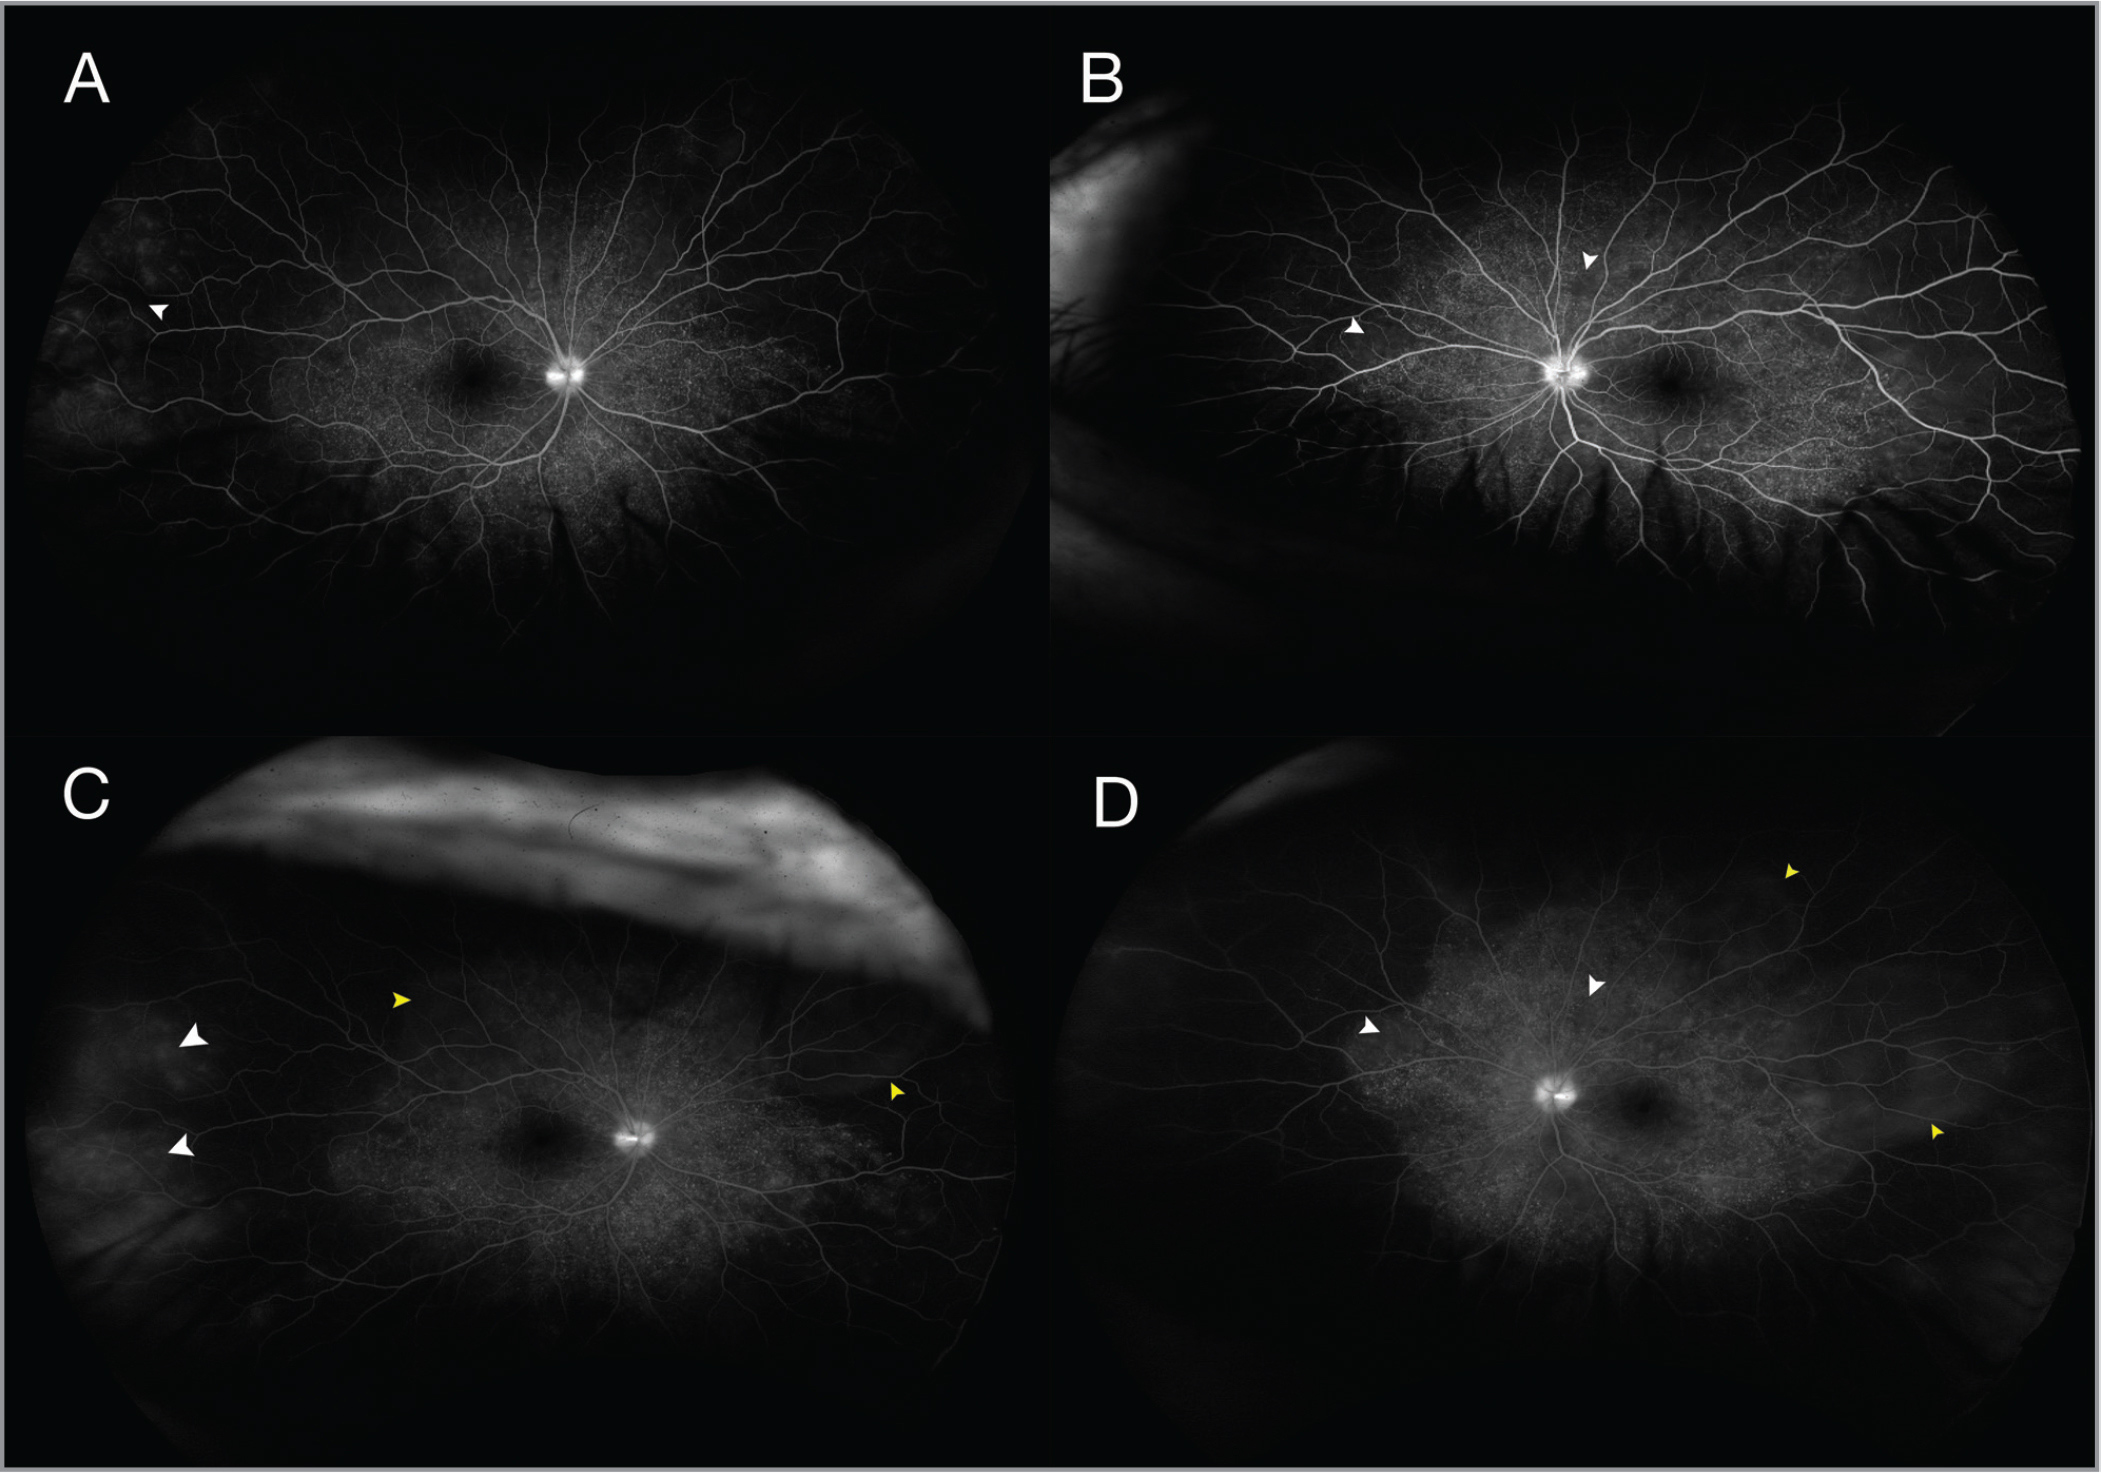 Fluorescein angiography showing optic disc staining, typical pinpoint staining, and larger hypofluorescent lesions in the early phases (A: right eye, B: left eye), which become hyperfluorescent in the late phase (white arrowheads), with multi-lobulated pooling of dye in the areas of exudative retinal detachments in both eyes (yellow arrowheads) (C: right eye, D: left eye).